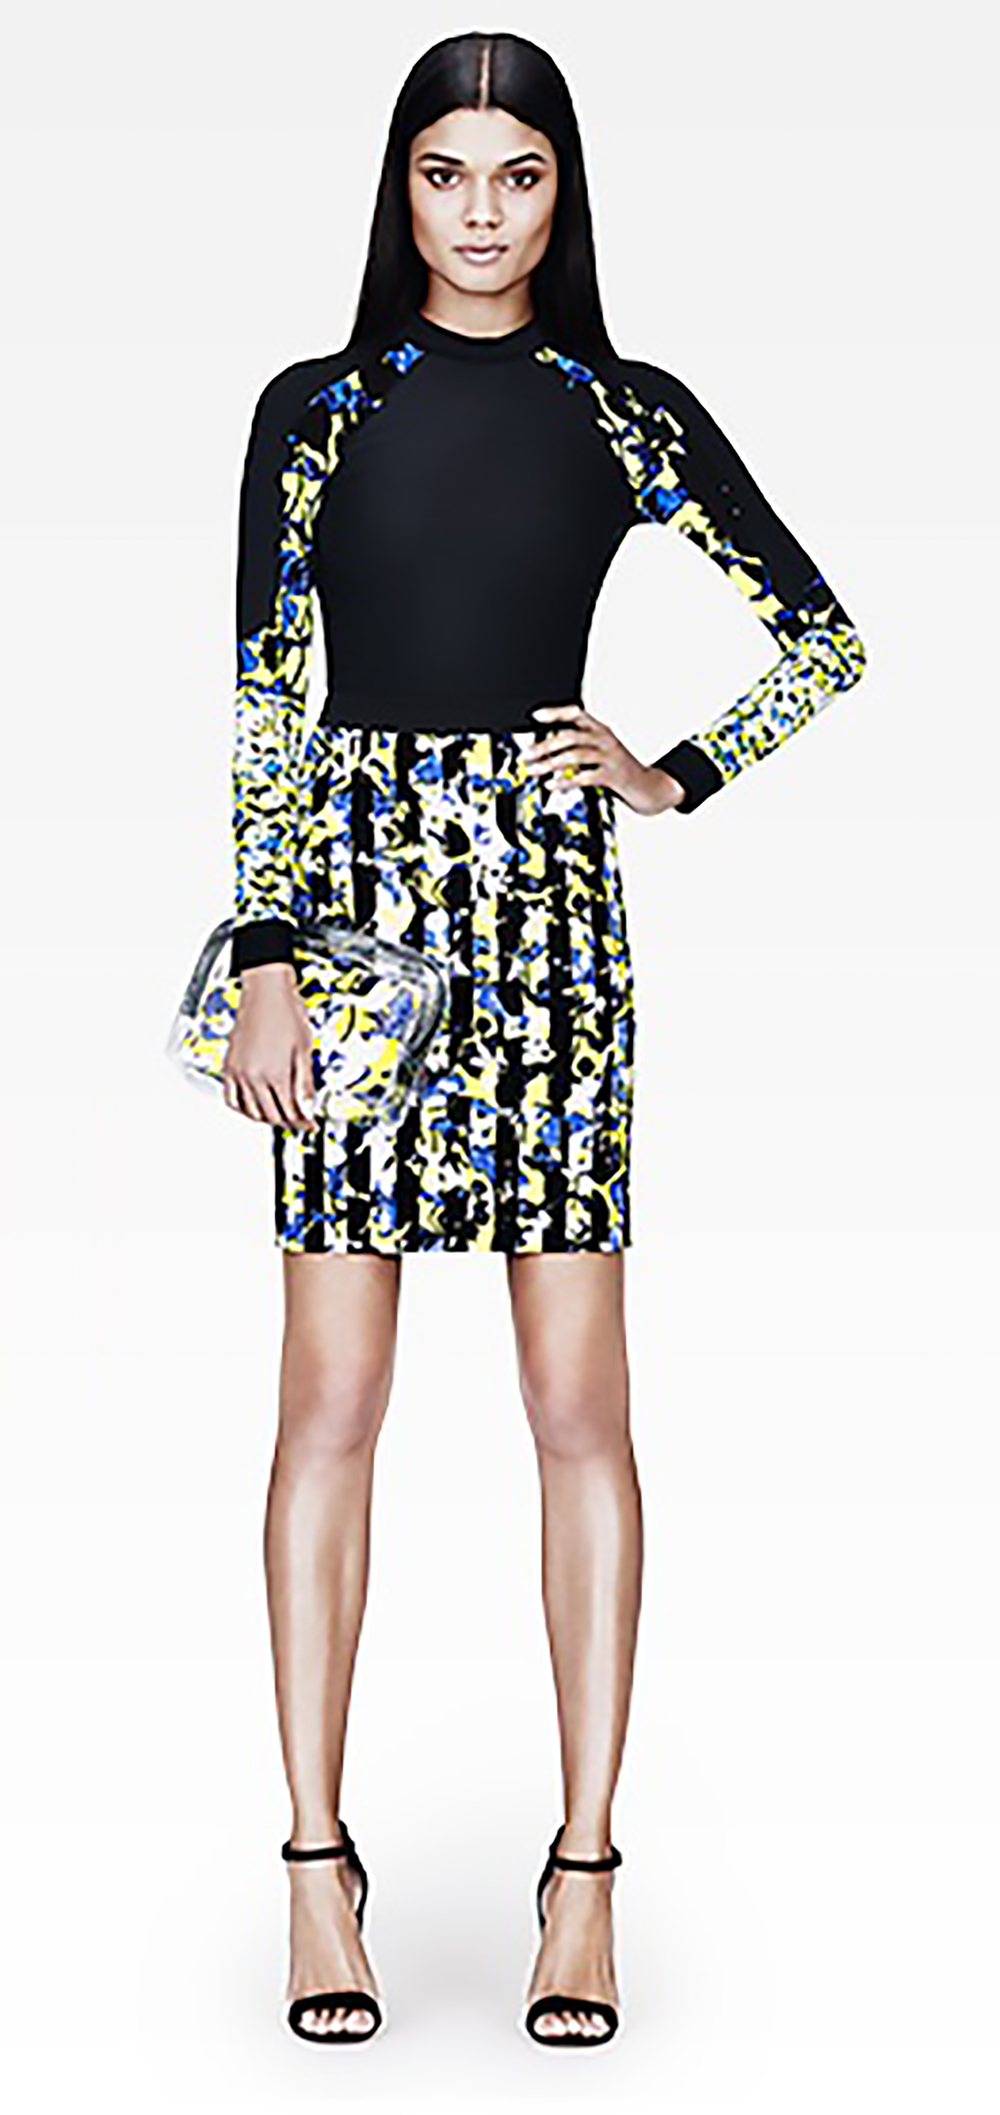 target.com peter pilotto pencil skirt in green floral stripe 1500.jpg